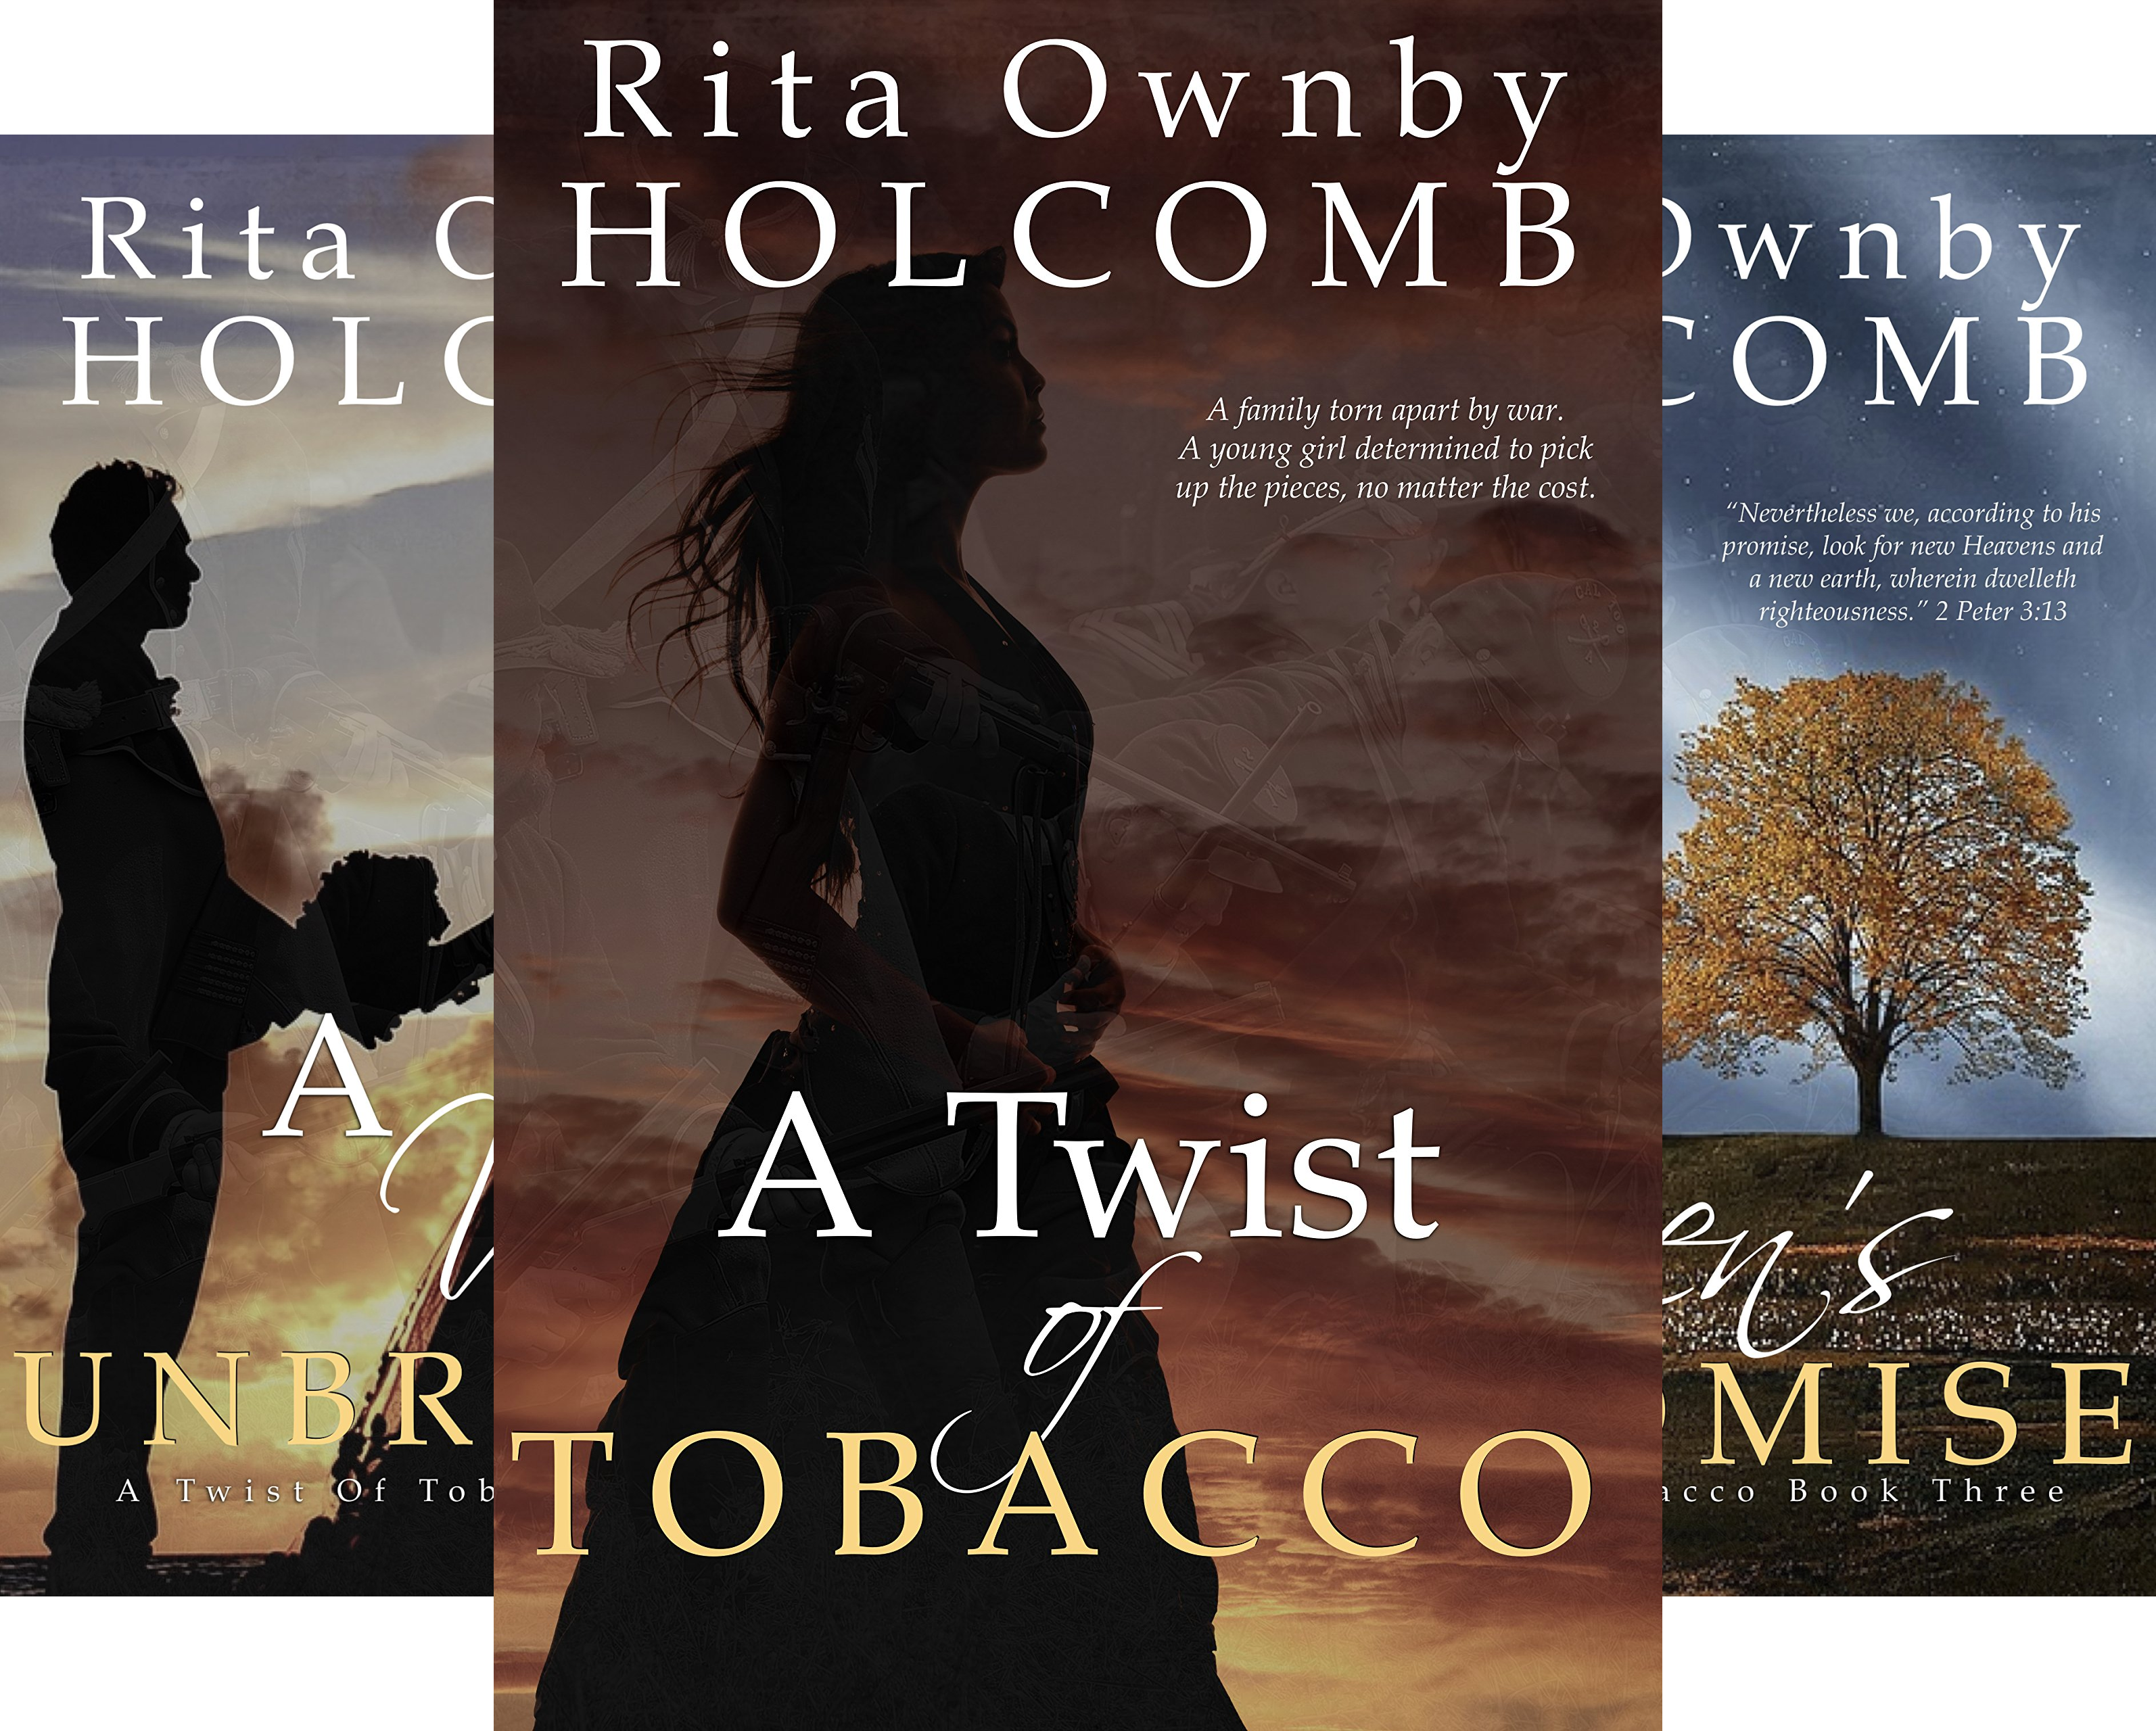 A Twist of Tobacco (4 Book Series)